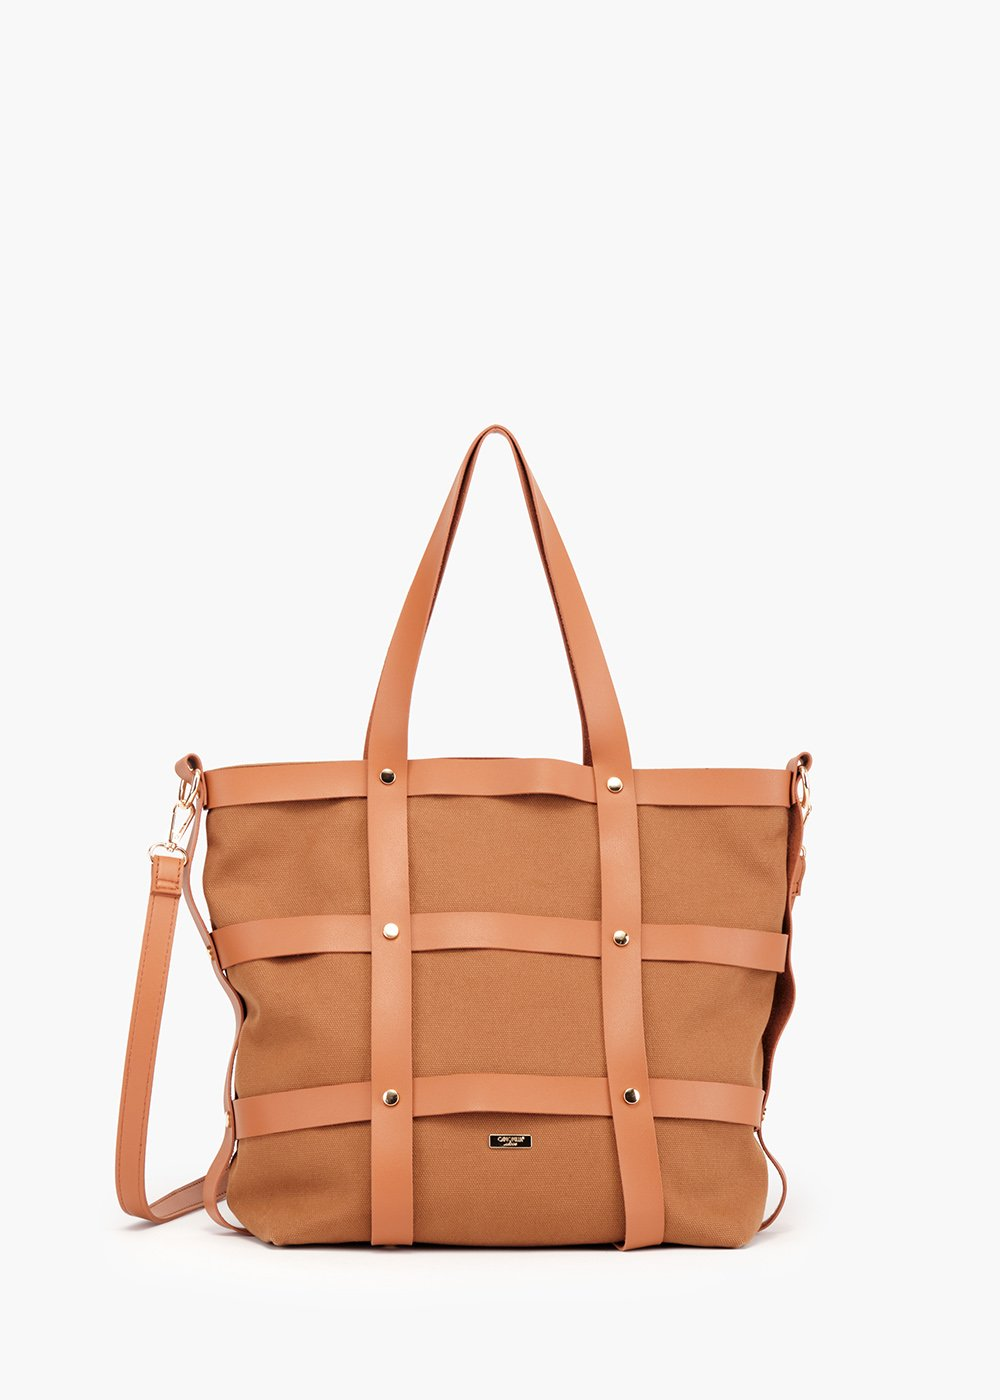 Bjor Shopping bag cage model with micro studs detail - Sughero - Woman